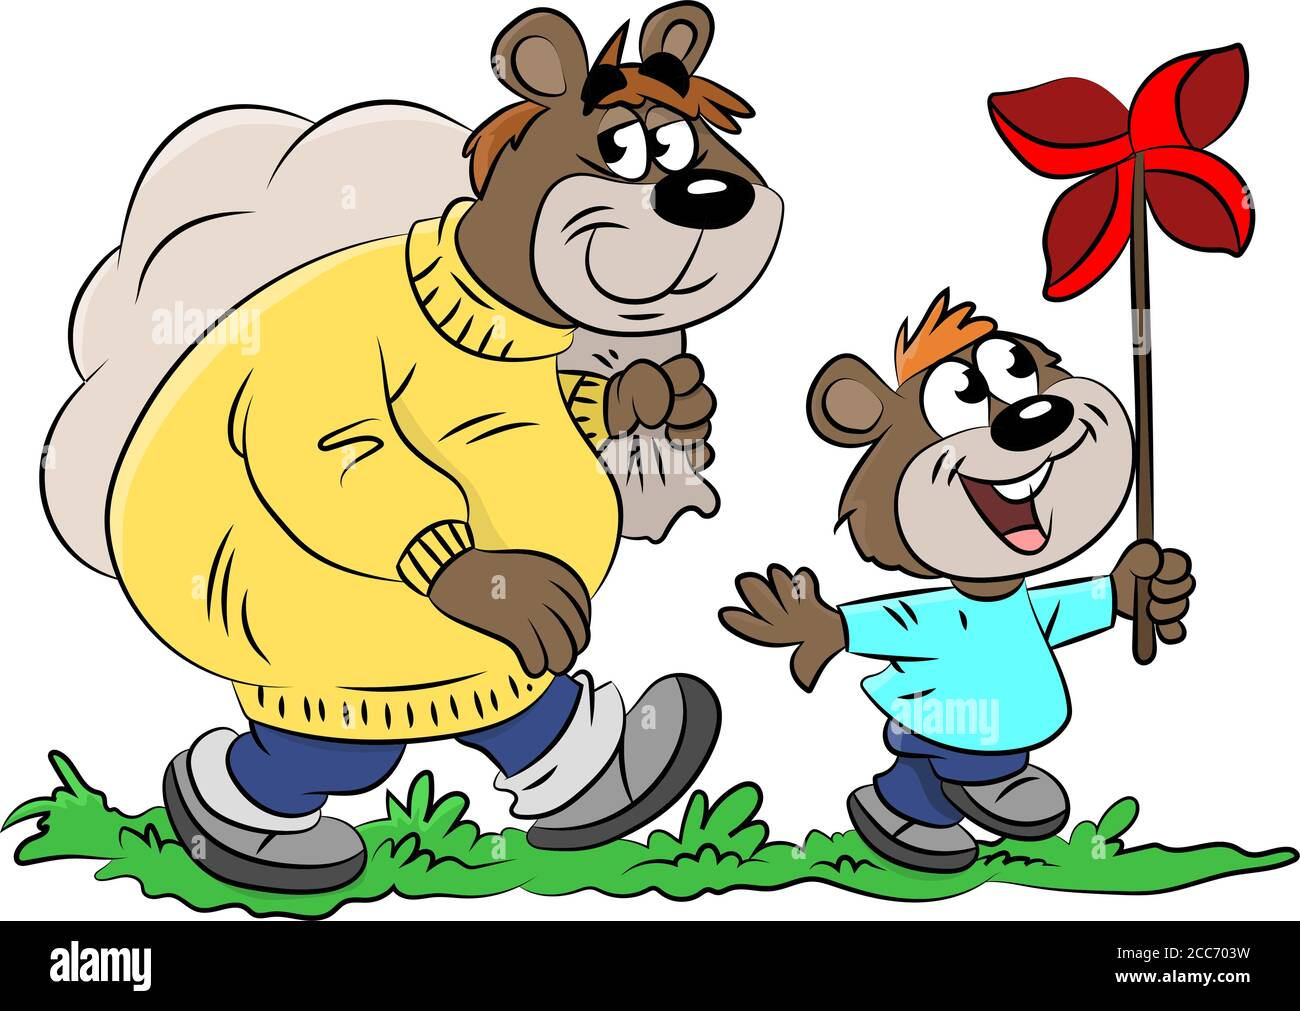 Cartoon Bears High Resolution Stock Photography And Images Alamy